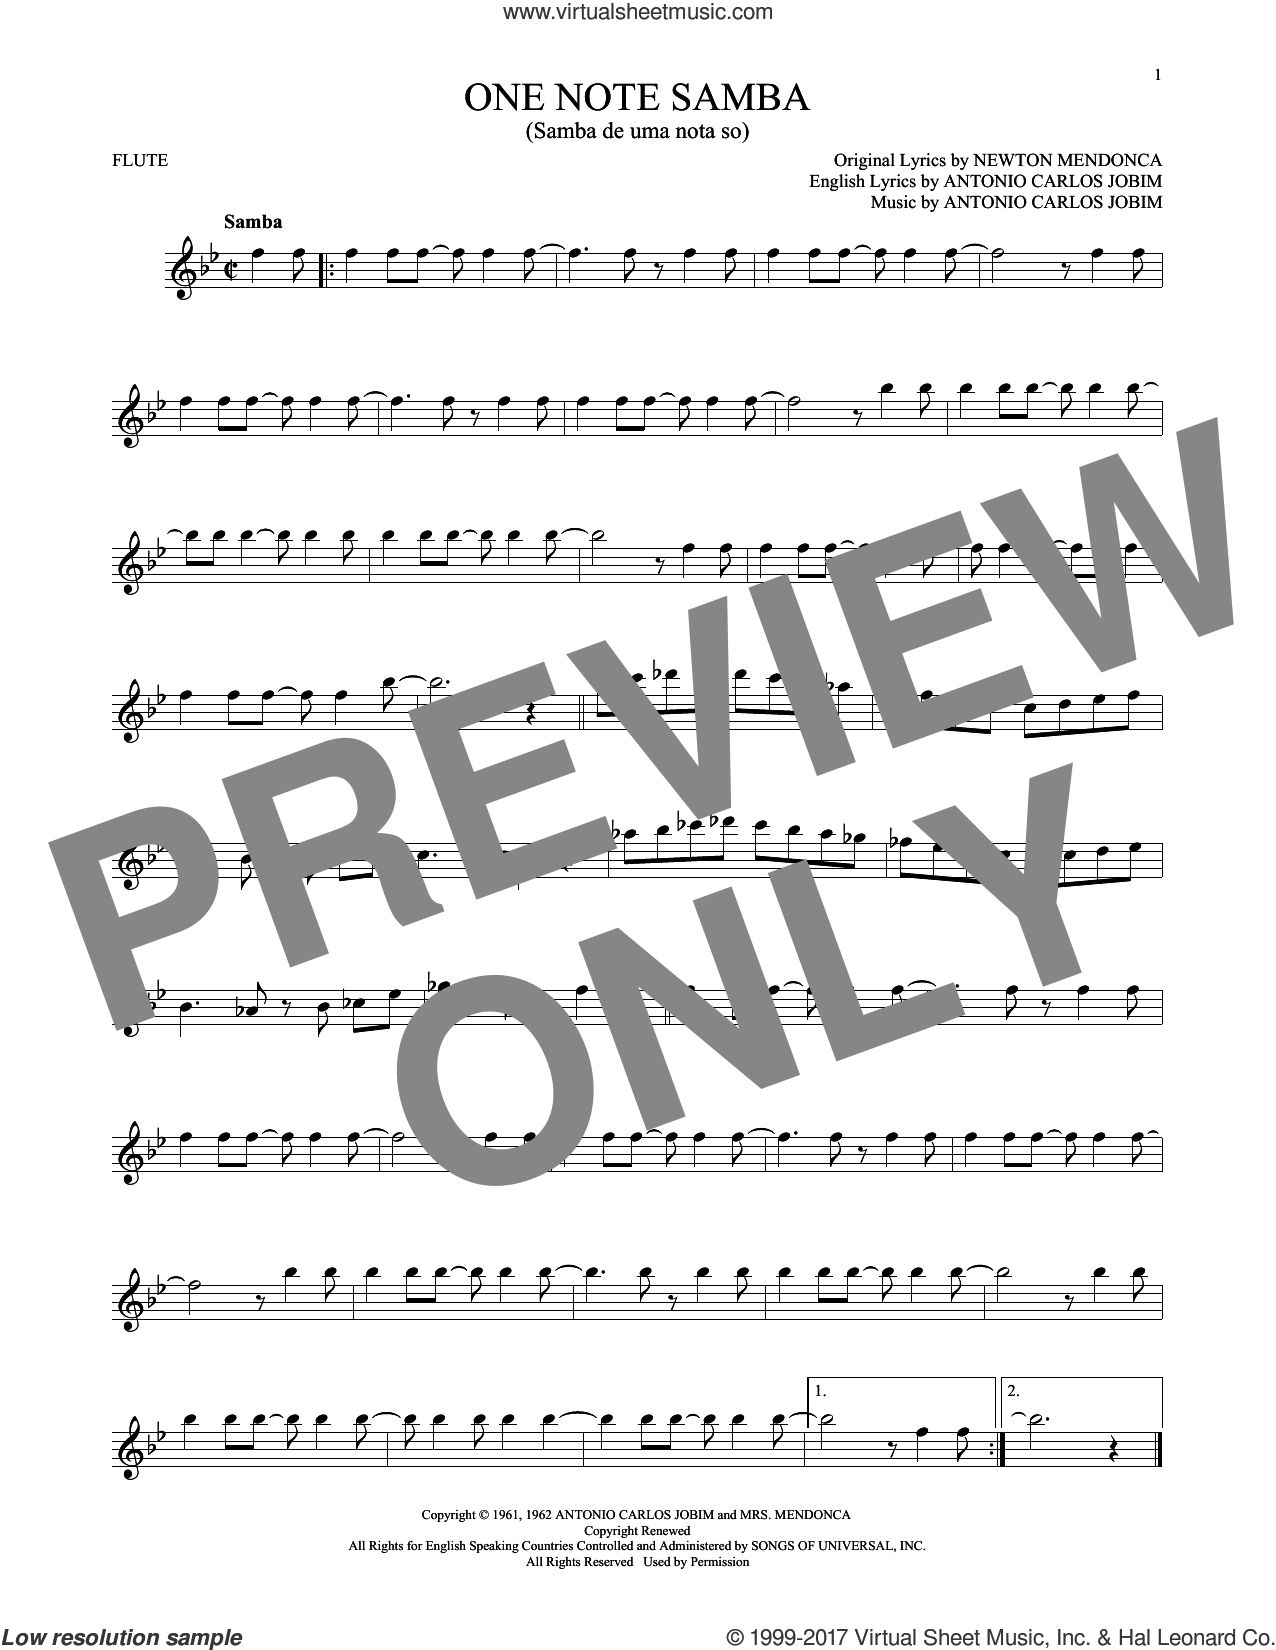 One Note Samba (Samba De Uma Nota So) sheet music for flute solo by Antonio Carlos Jobim. Score Image Preview.